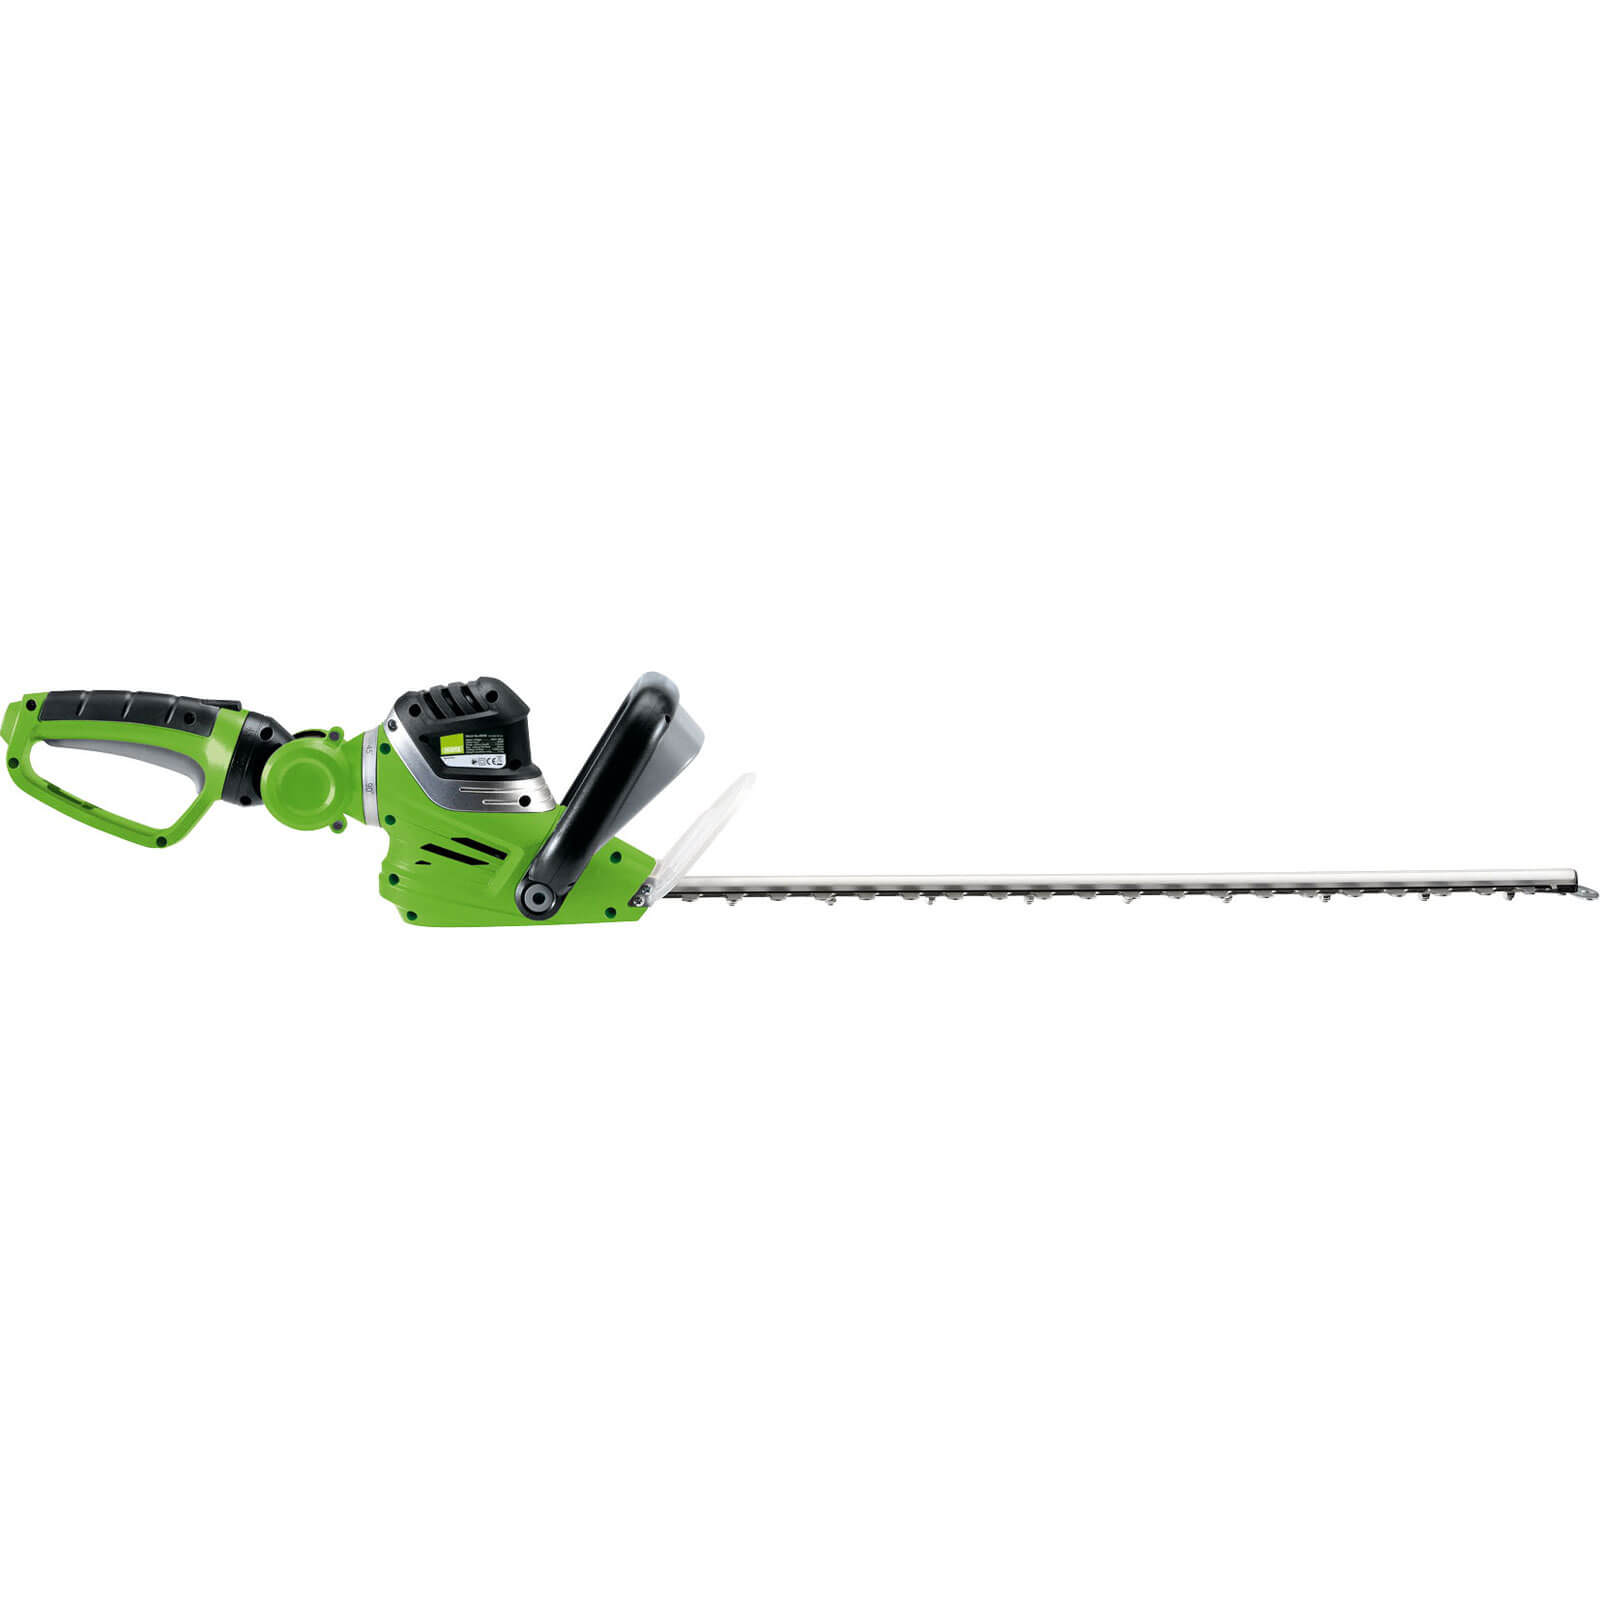 Draper 600W Hedge Trimmer 610mm